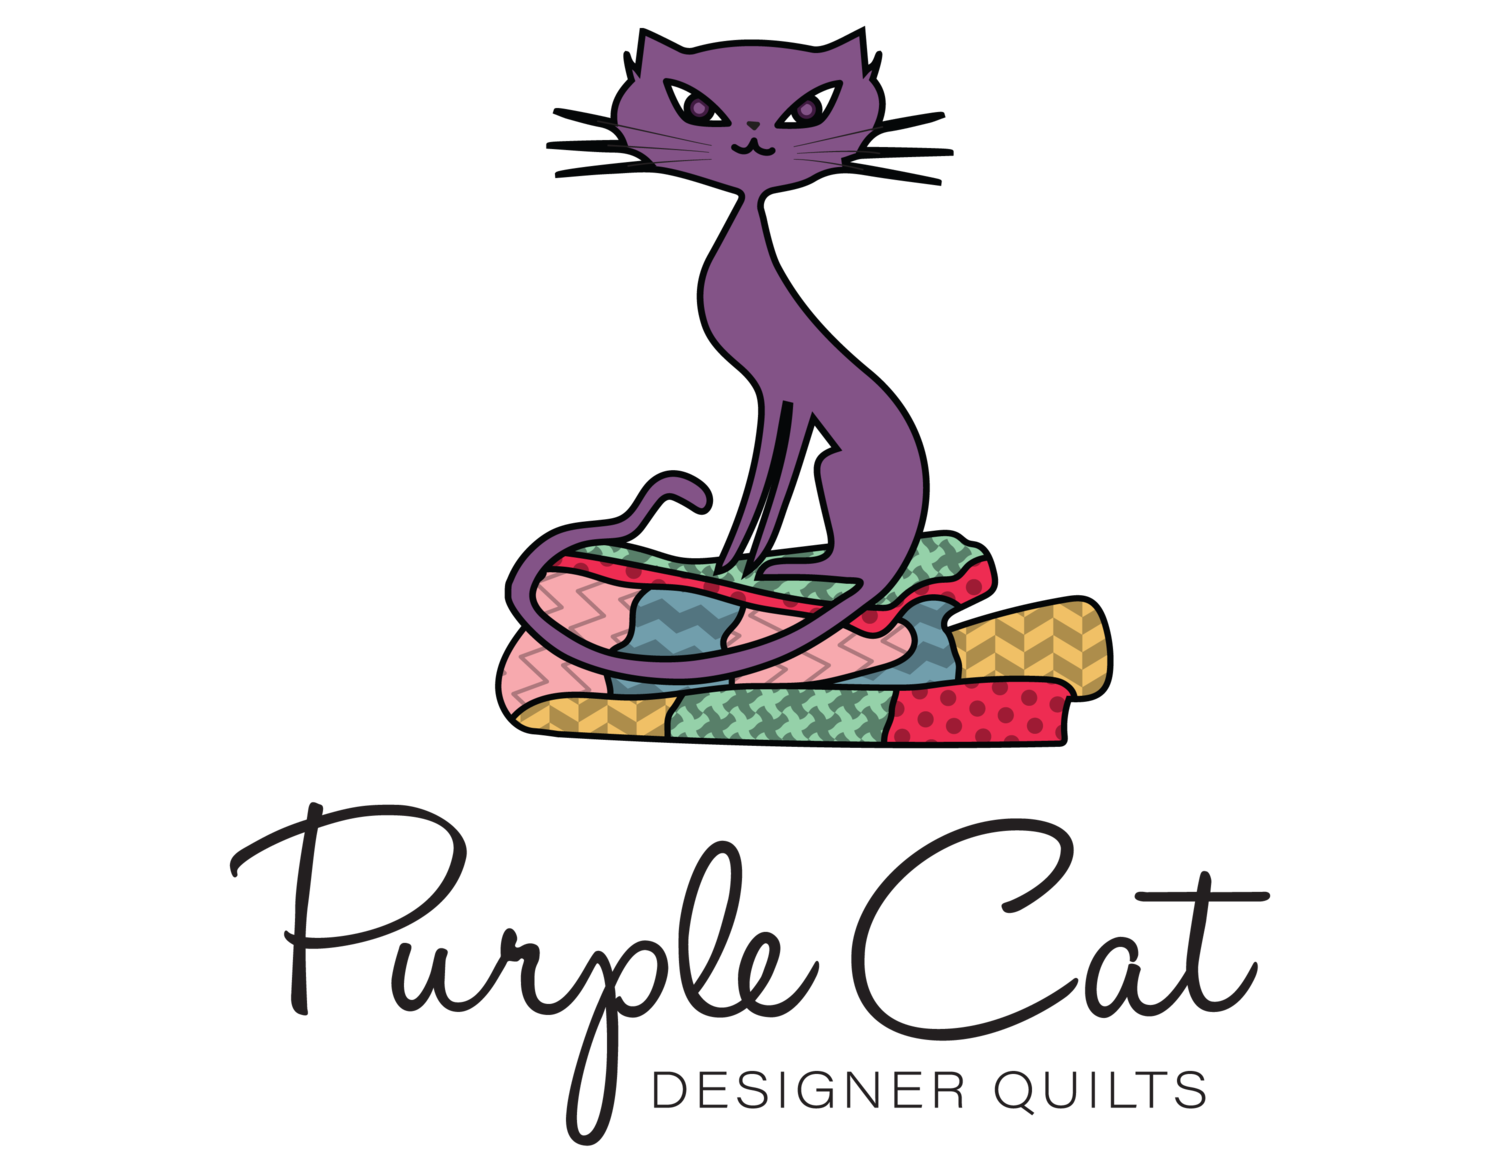 Quilting clipart transparent. About purple cat quilts